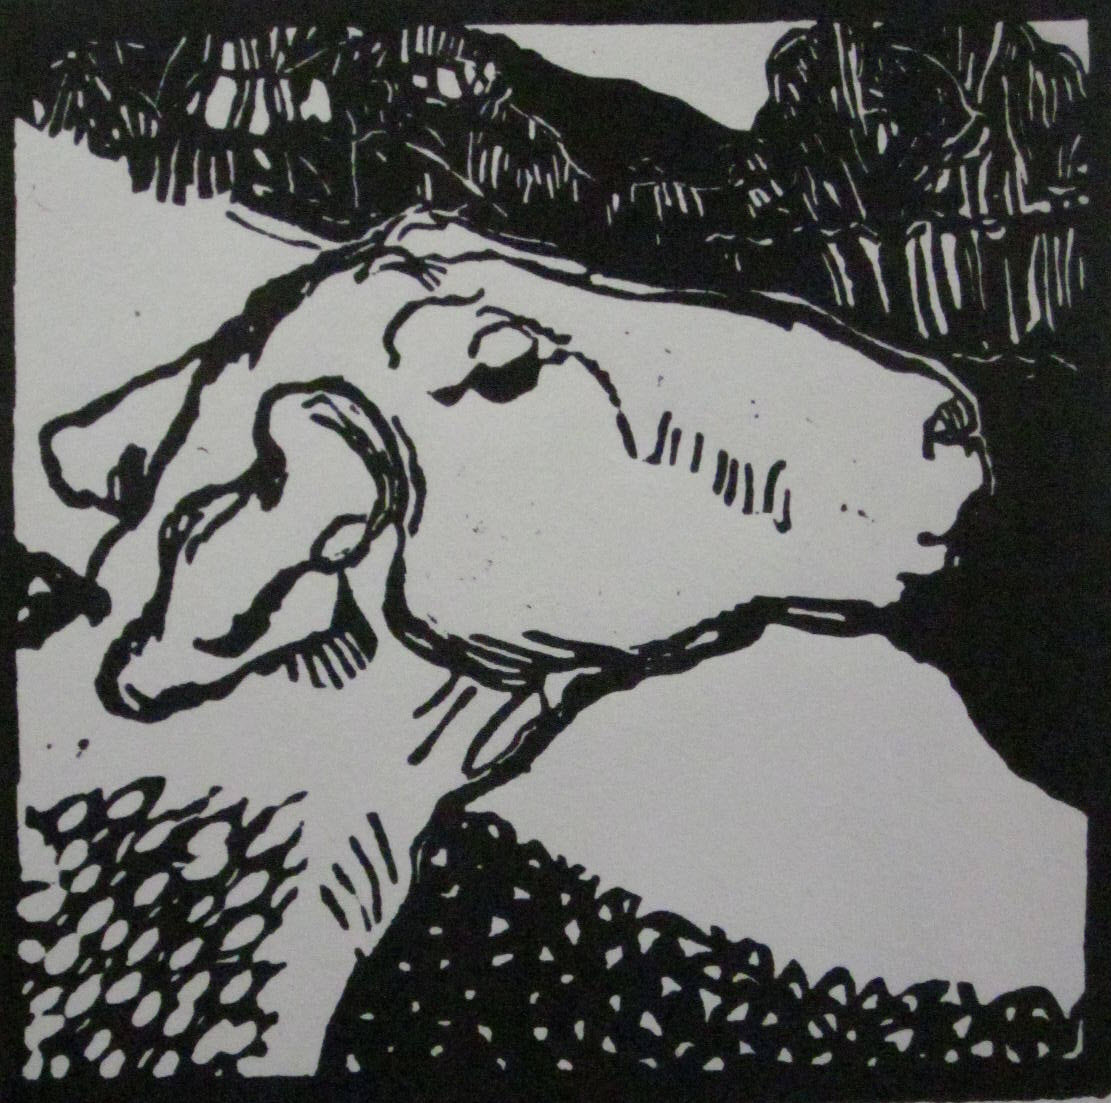 Sheep-lino cut - 2014